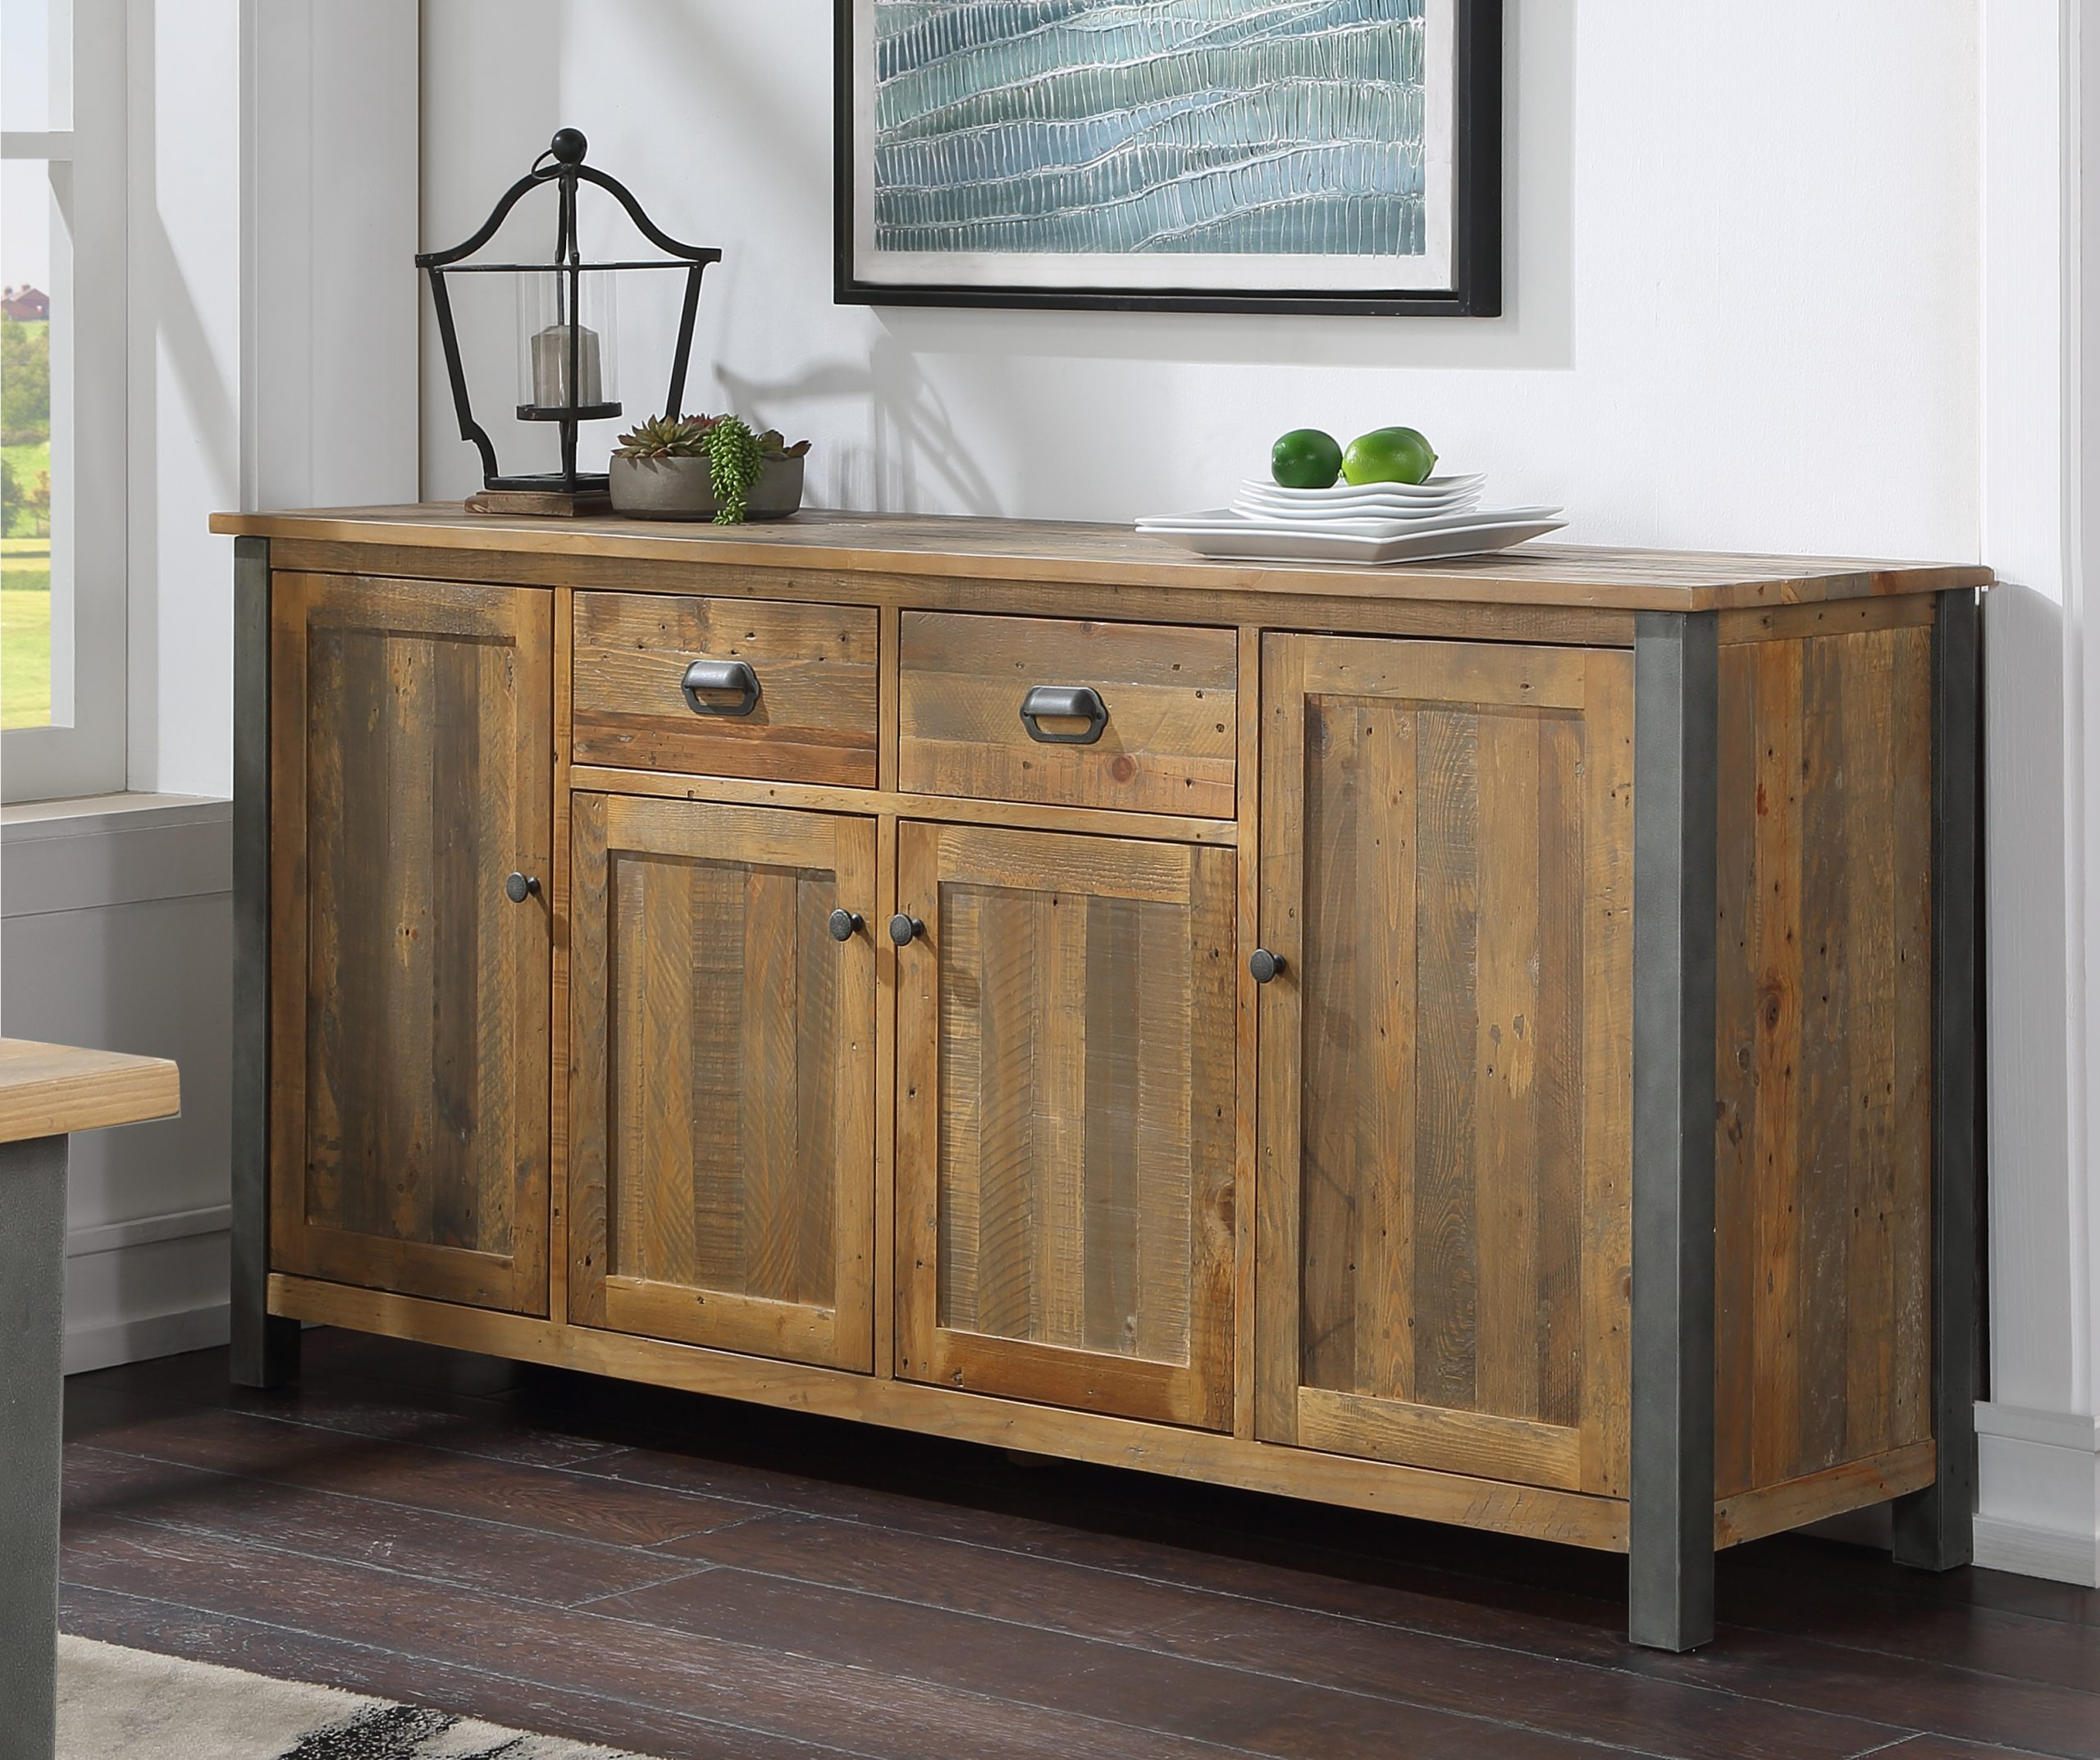 extra-large recycled wood sideboard